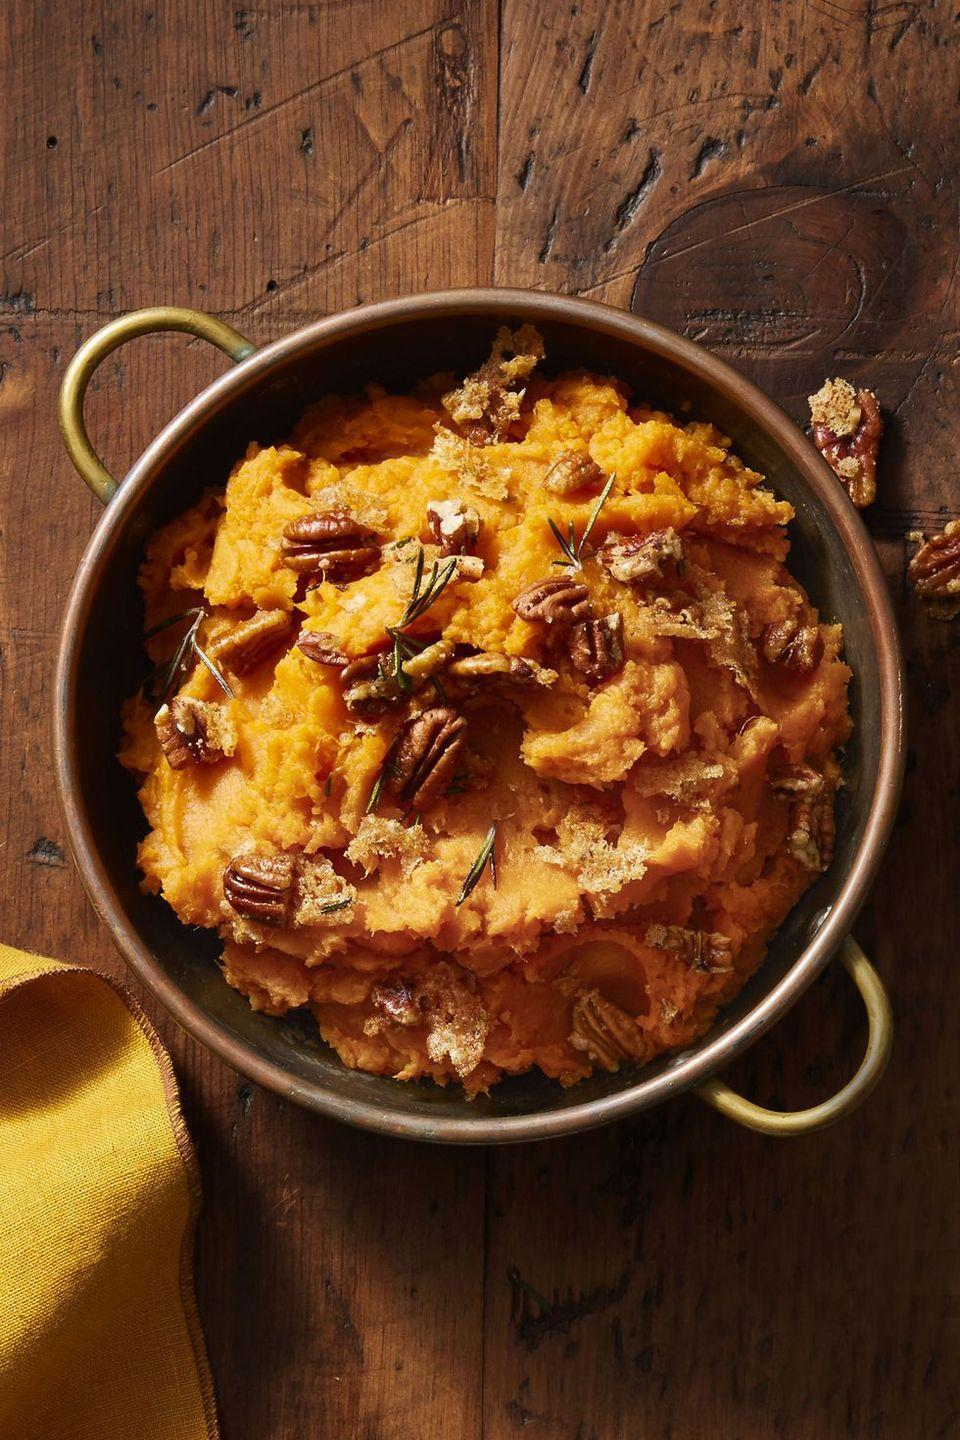 """<p>Just add pure maple syrup, pecans, and fresh rosemary to your mashed sweet potatoes to transform them into a 5-star side dish your guests will remember for years to come. </p><p><em><strong>Get the recipe at <a href=""""https://www.goodhousekeeping.com/food-recipes/easy/a46618/rosemary-pecan-mashed-sweet-potatoes-recipe/"""" rel=""""nofollow noopener"""" target=""""_blank"""" data-ylk=""""slk:Good Housekeeping"""" class=""""link rapid-noclick-resp"""">Good Housekeeping</a>.</strong></em></p>"""